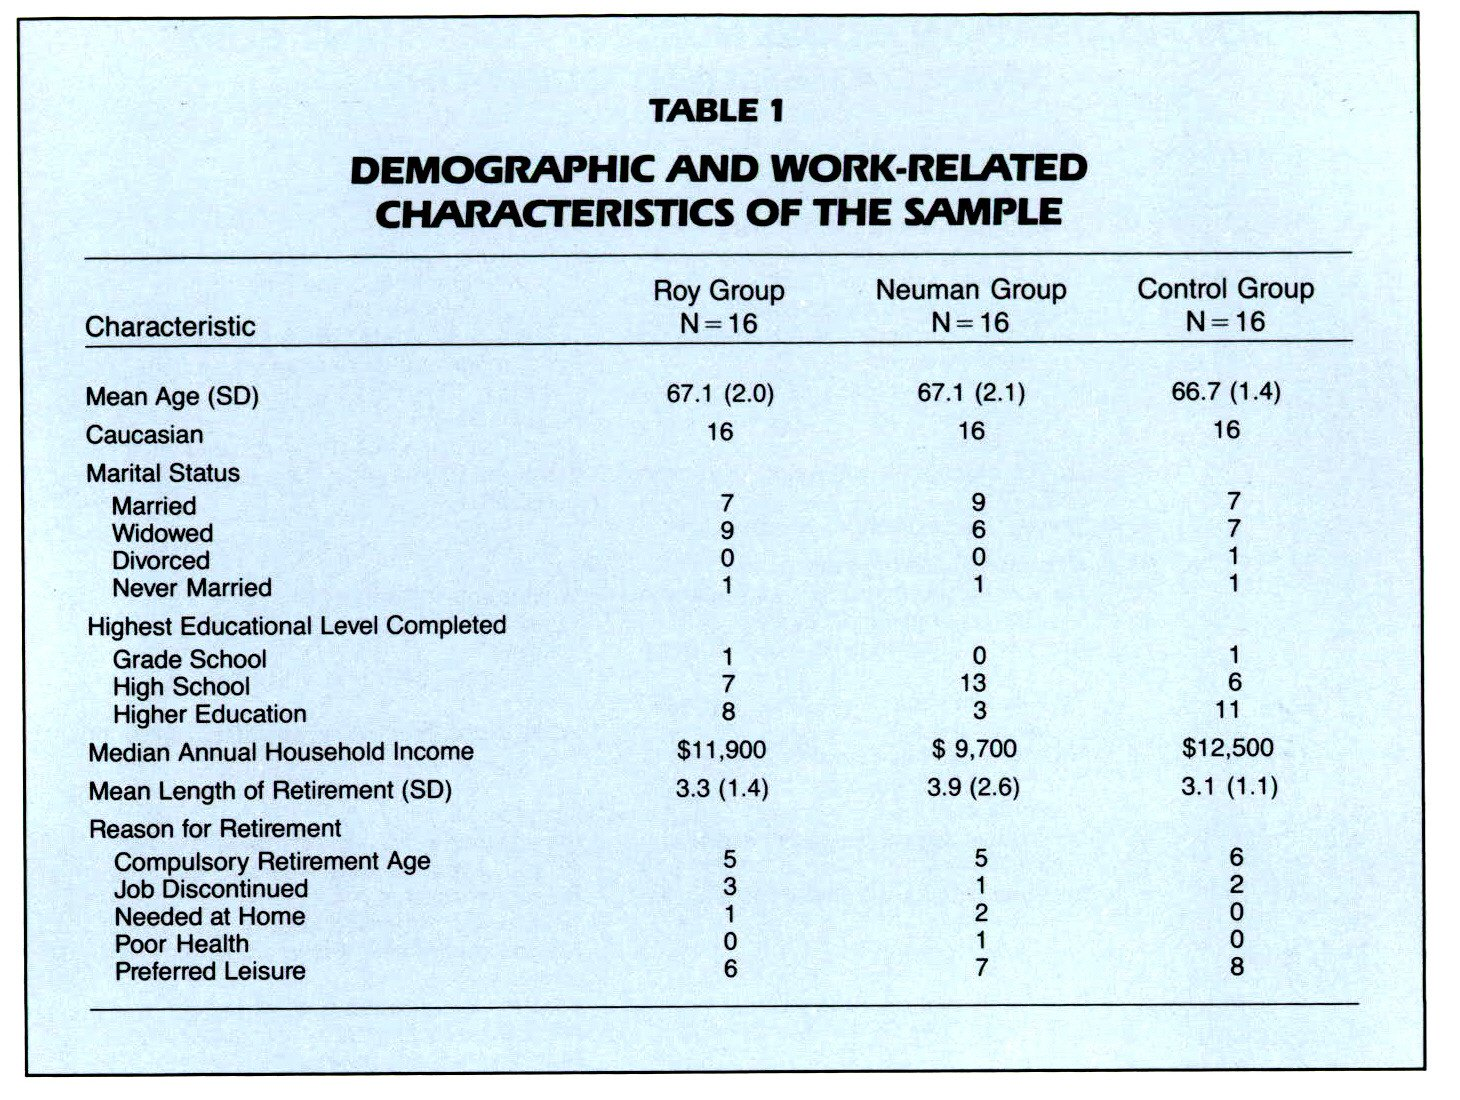 TABLE 1DEMOGRAPHIC AND WORK-RELATED CHARACTERISTICS OF THE SAMPLE